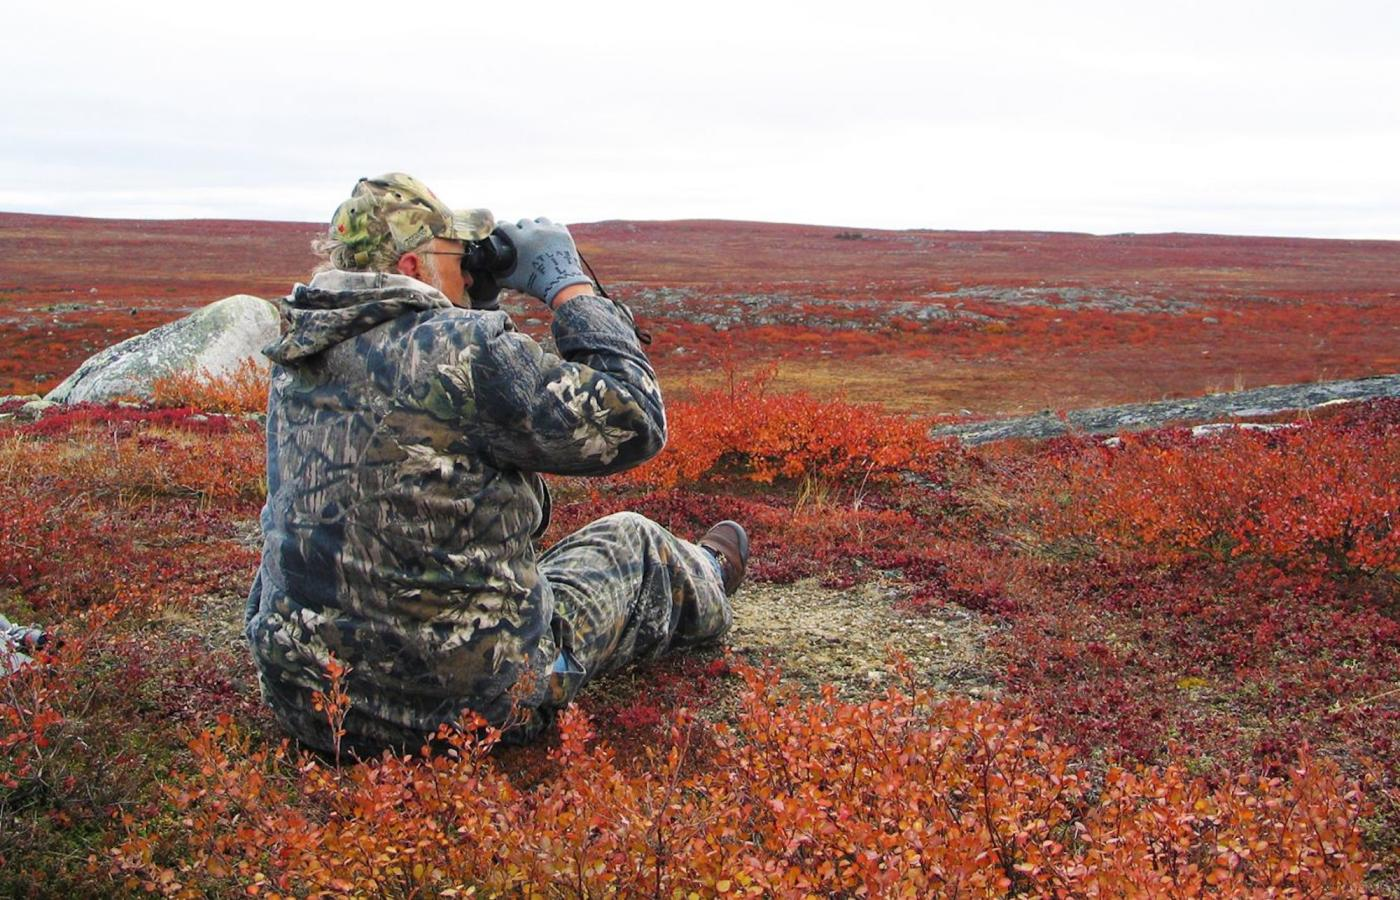 hunting in the barrenlands in the Northwest Territories